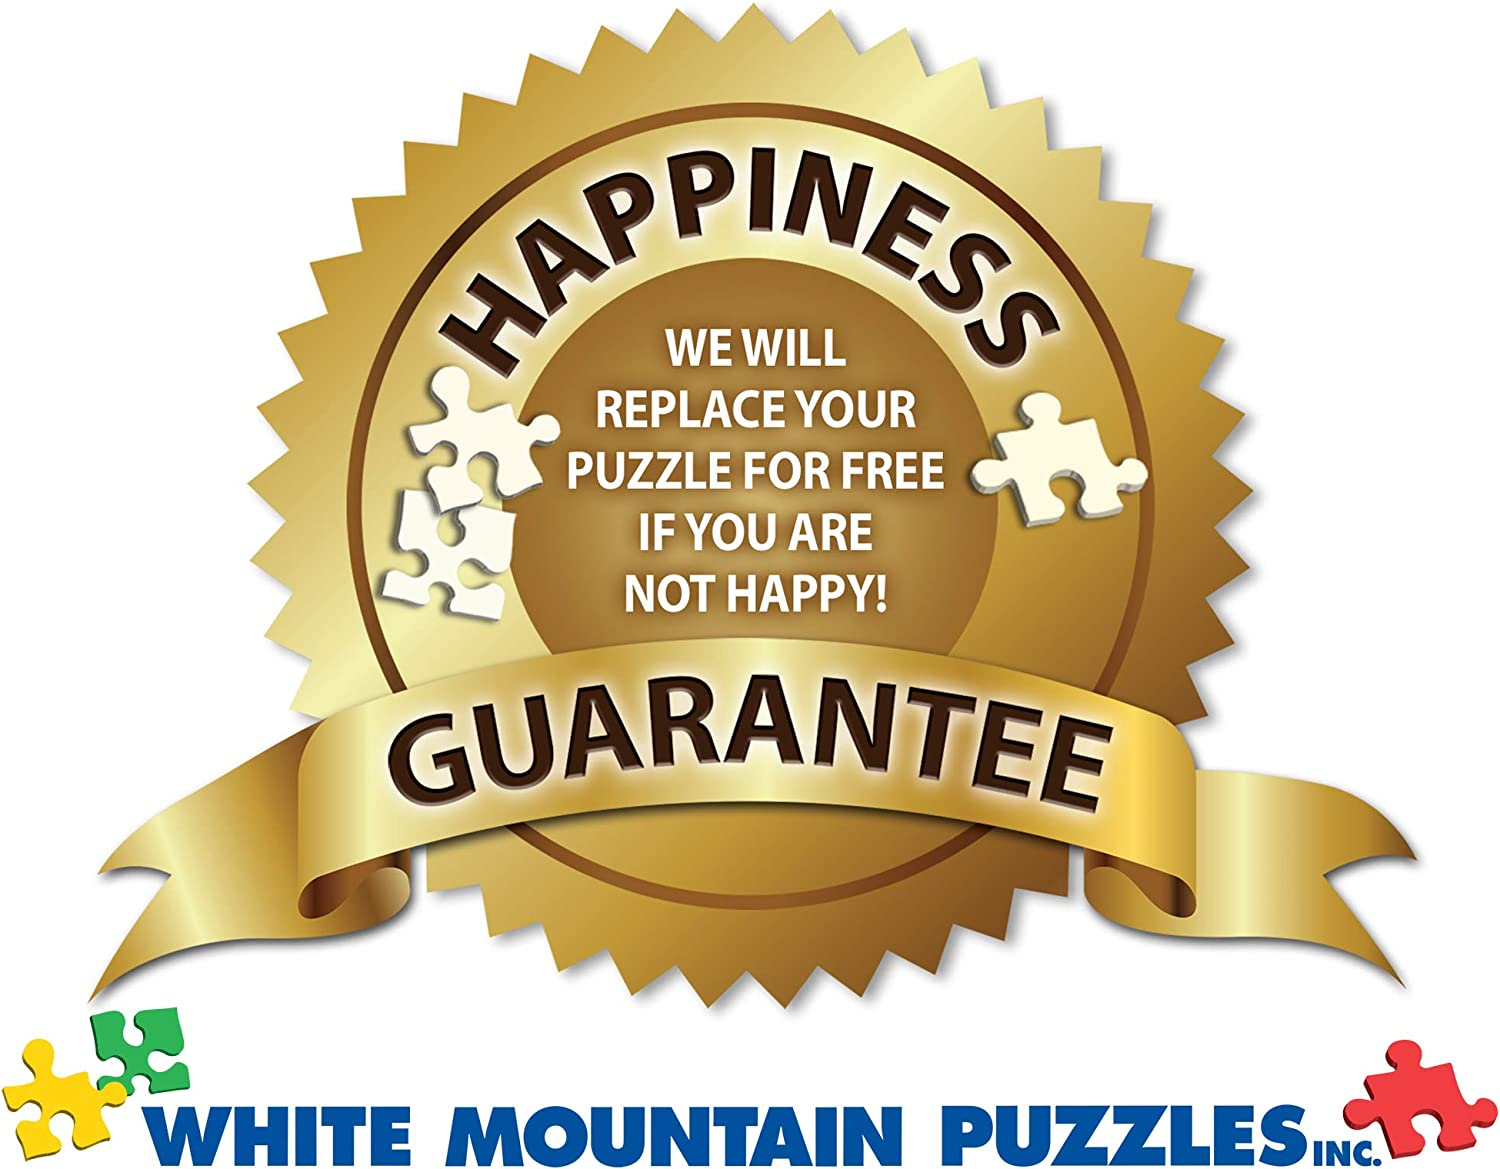 White Mountain Puzzles Boston Red Sox 2018-550 Piece Jigsaw Puzzle